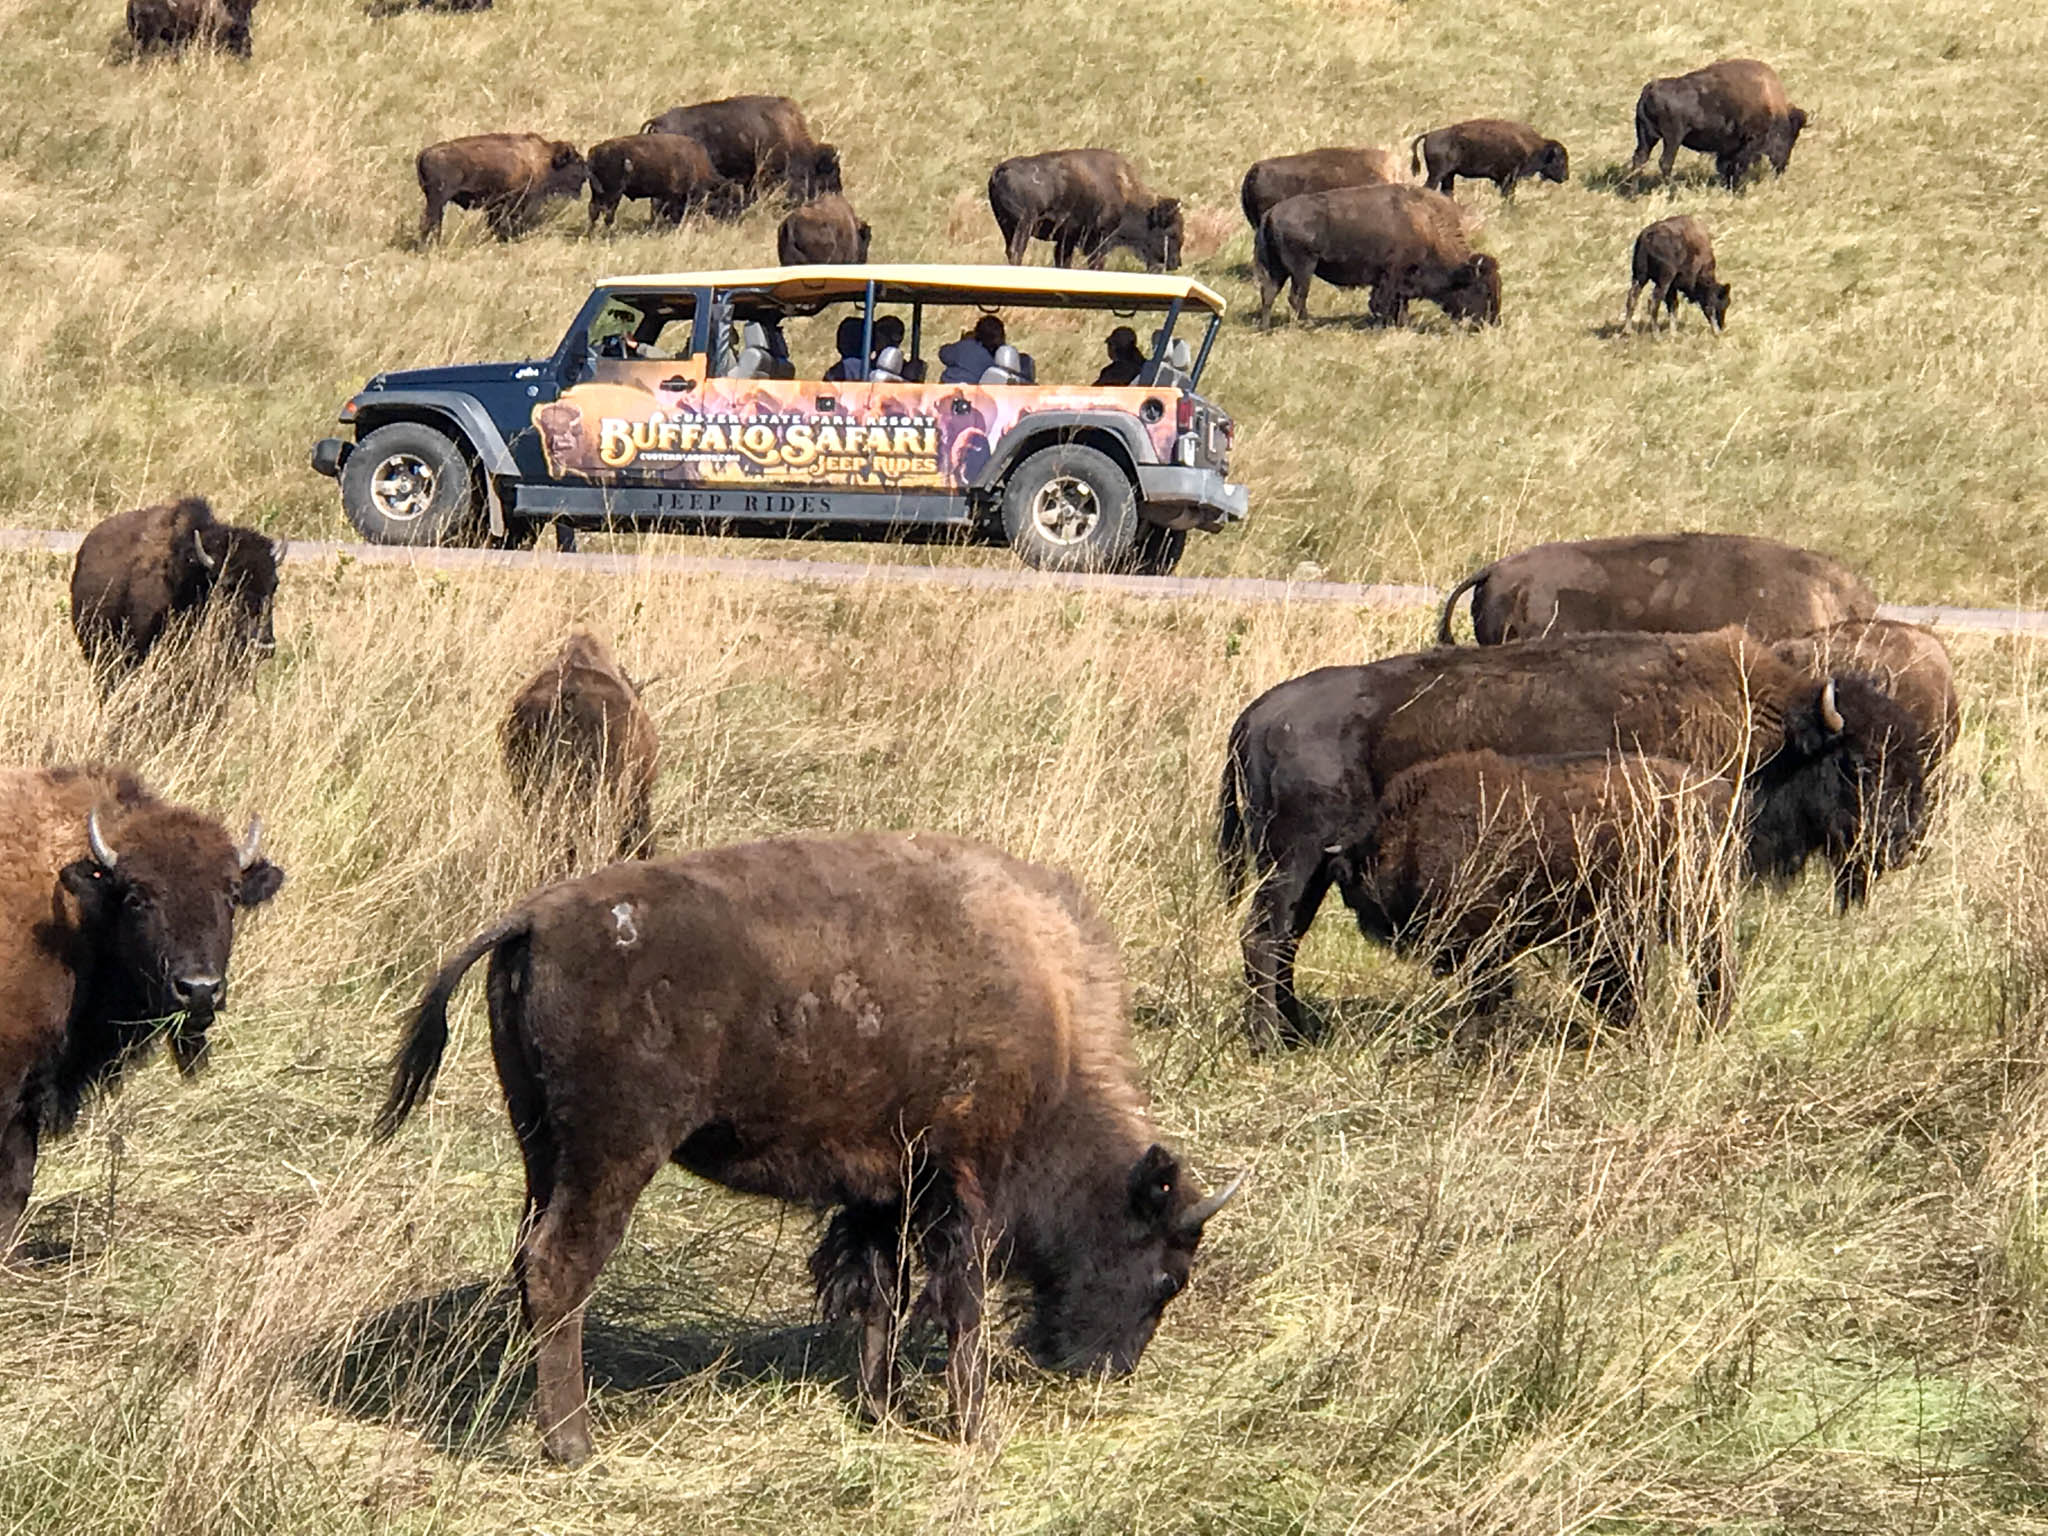 Safari in Custer State Park